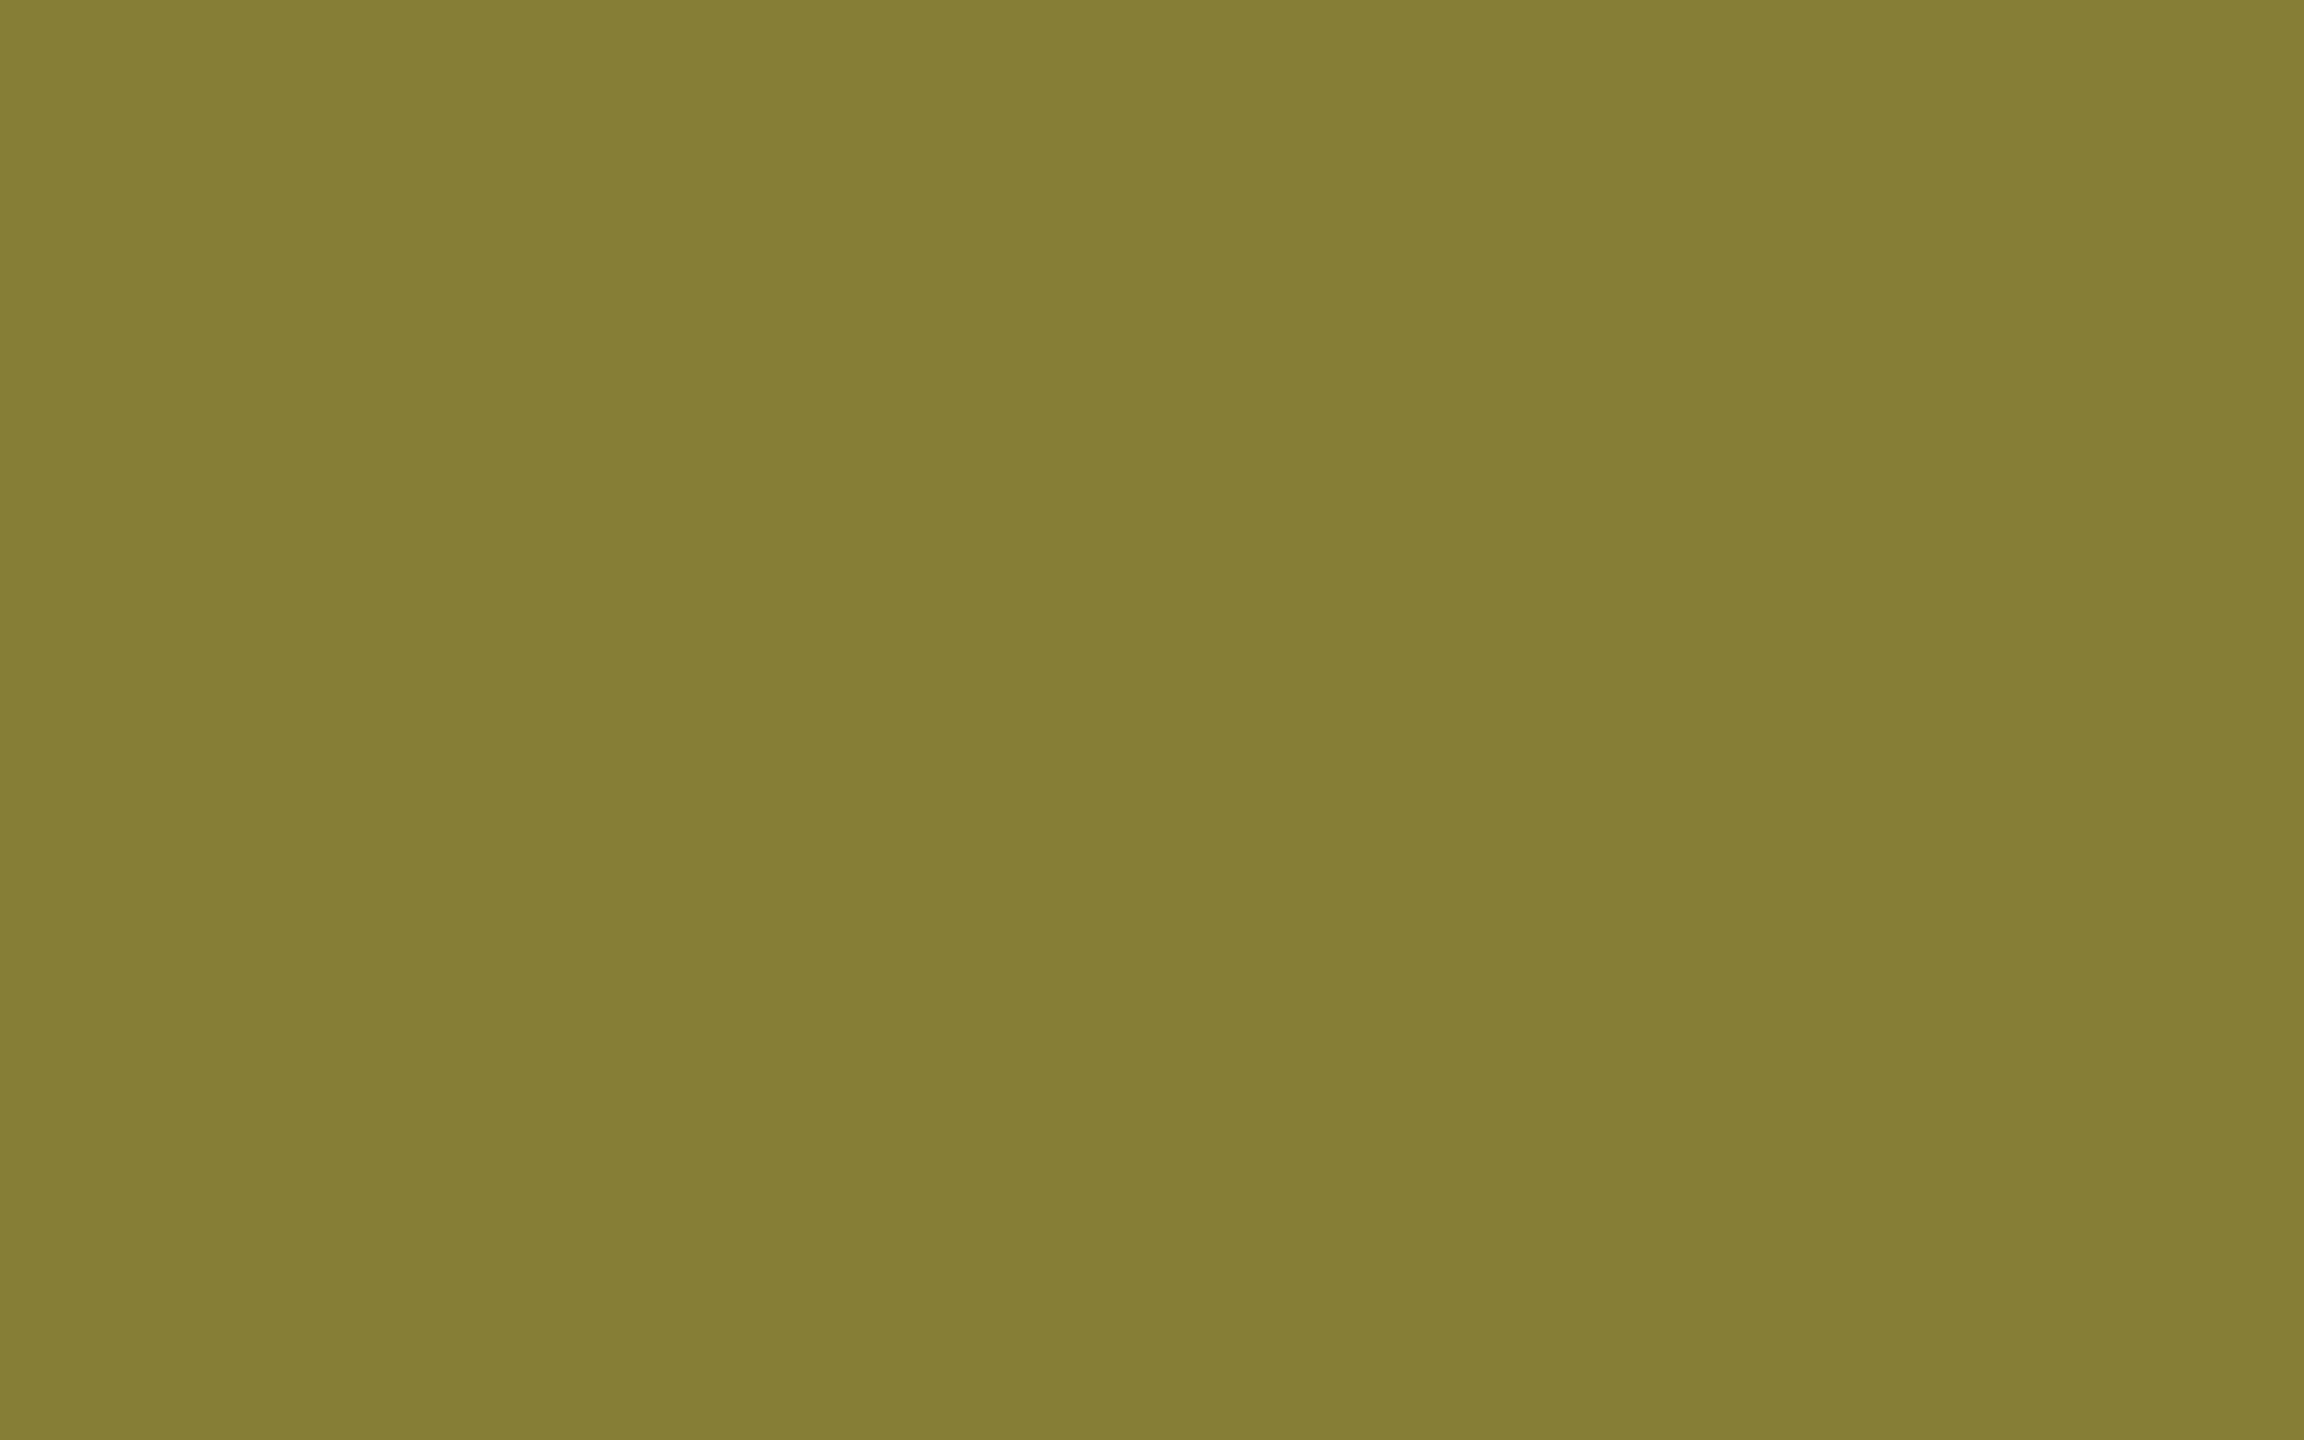 2304x1440 Old Moss Green Solid Color Background